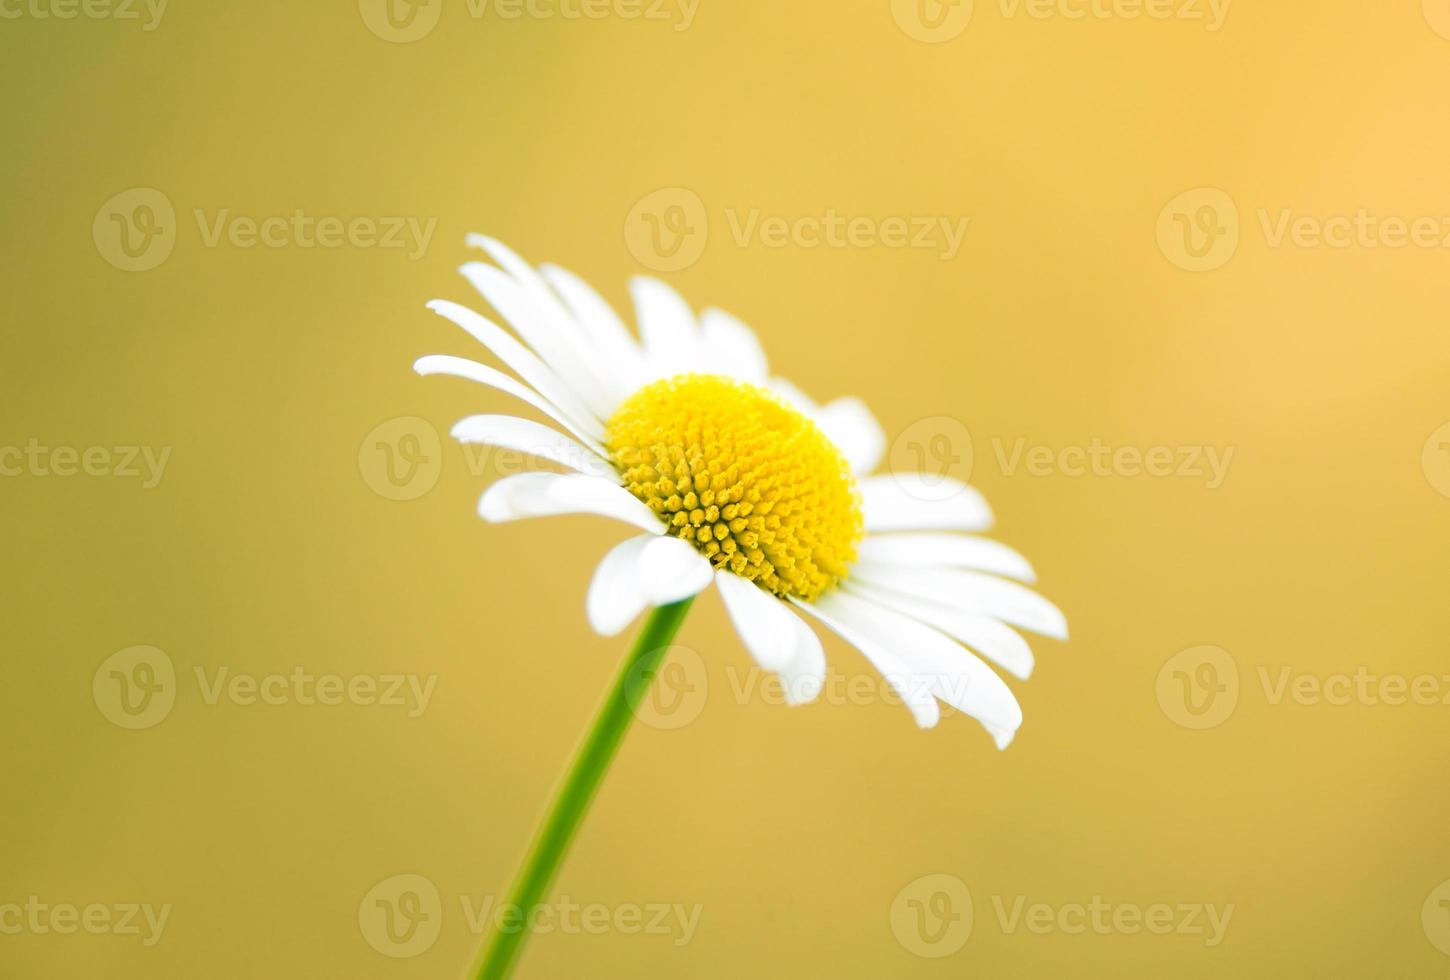 fond nature - marguerite sur fond jaune photo